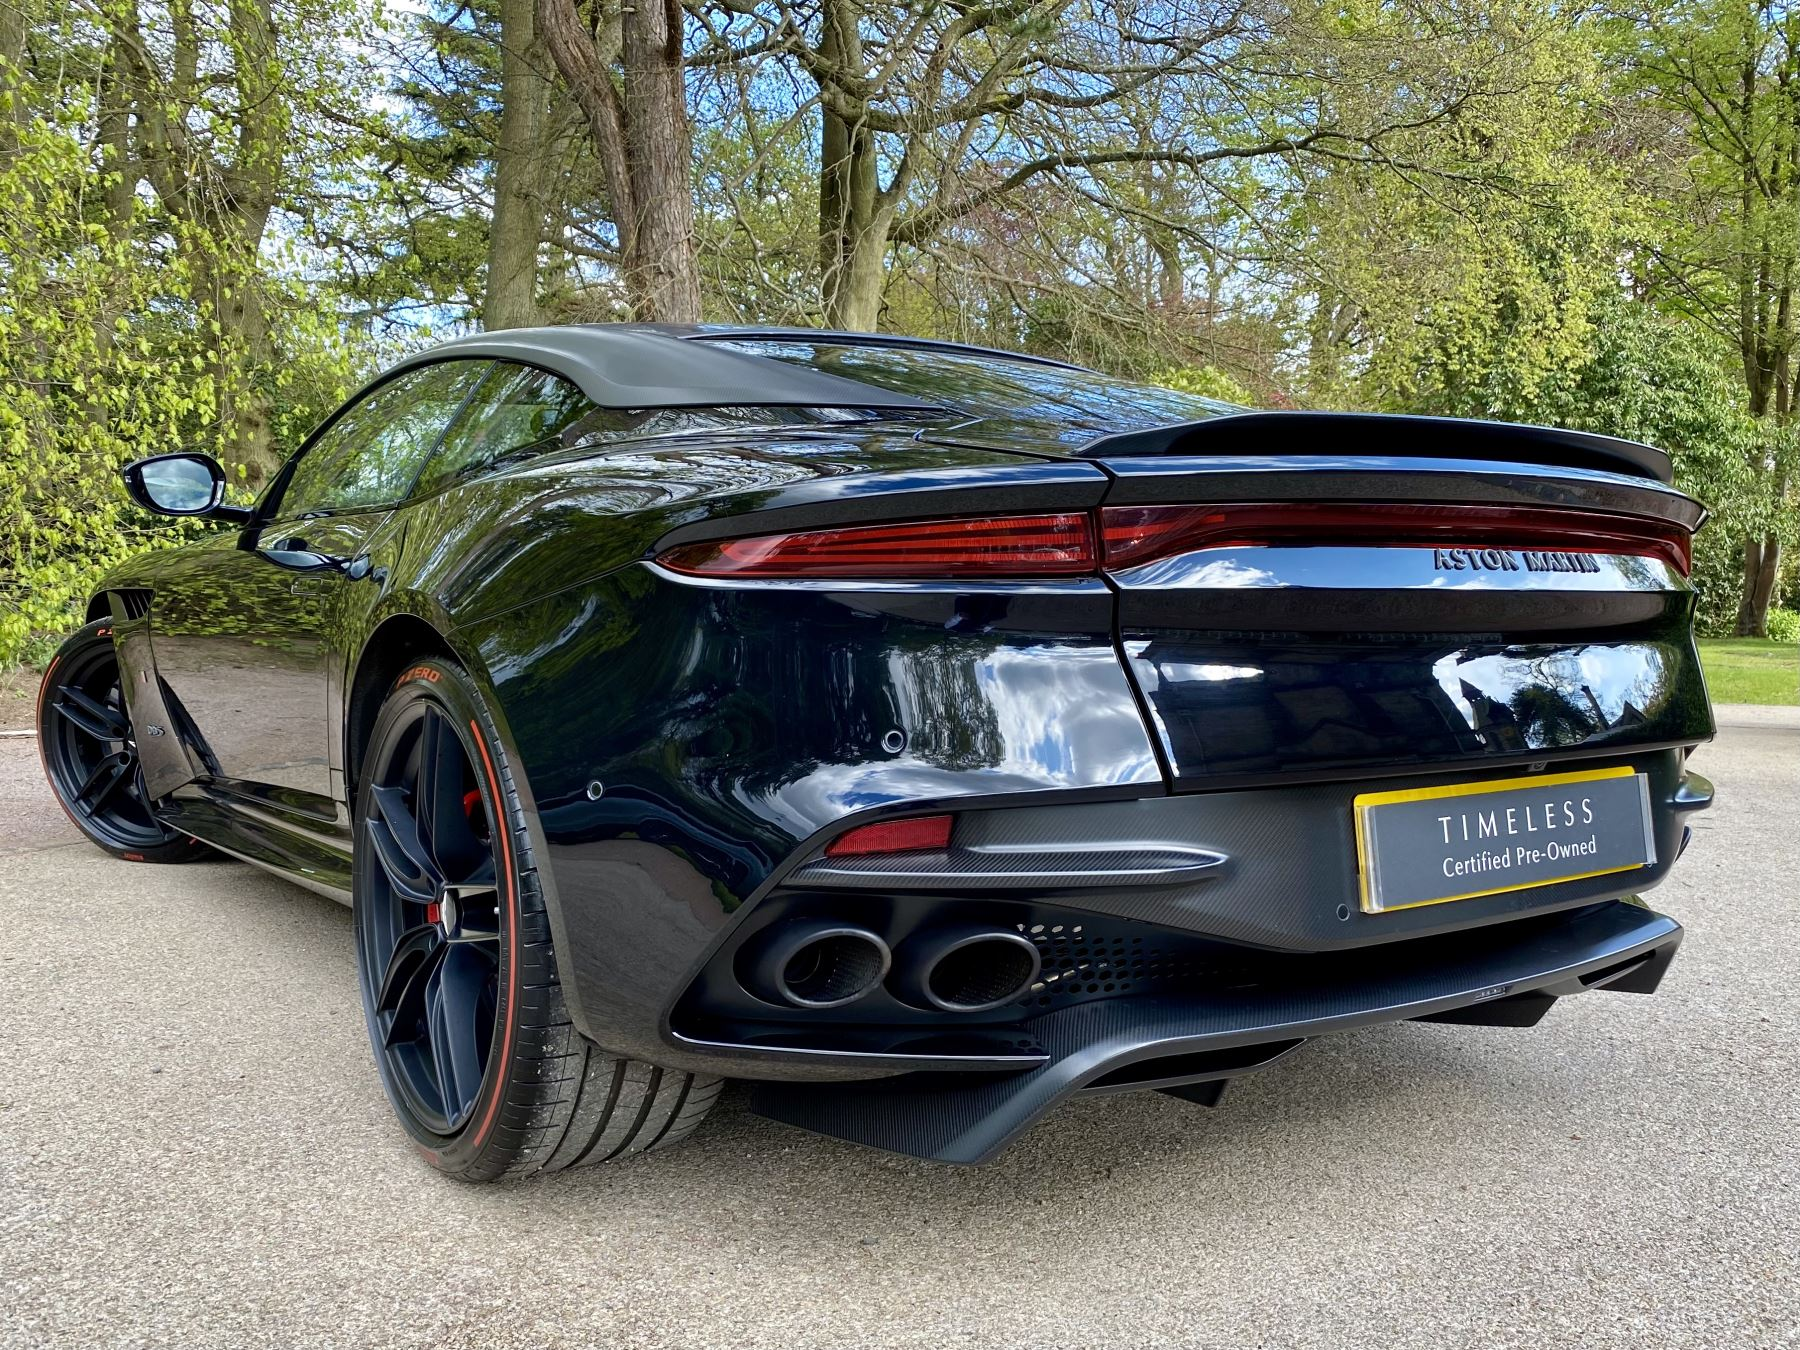 Aston Martin DBS V12 Superleggera 2dr Touchtronic Tag Edition  1 of 50 produced worldwide  image 7